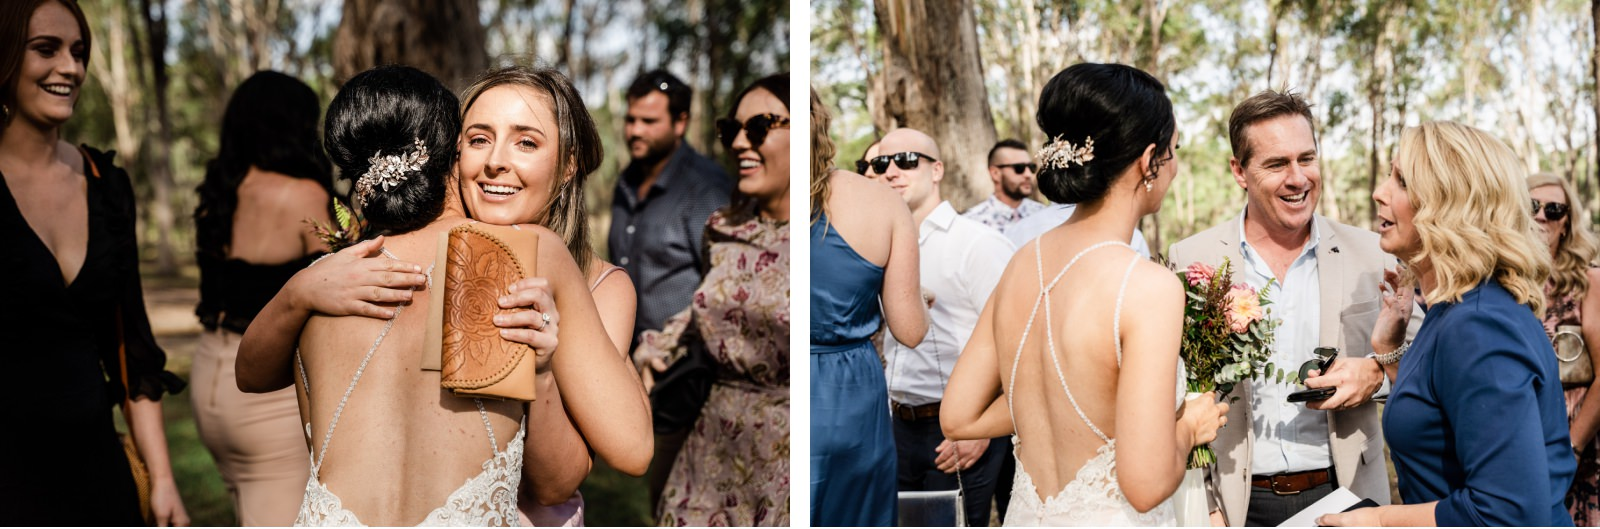 wandin-valley-estate-winery-lovedale-wedding-hunter-valley-wedding-photographer-34